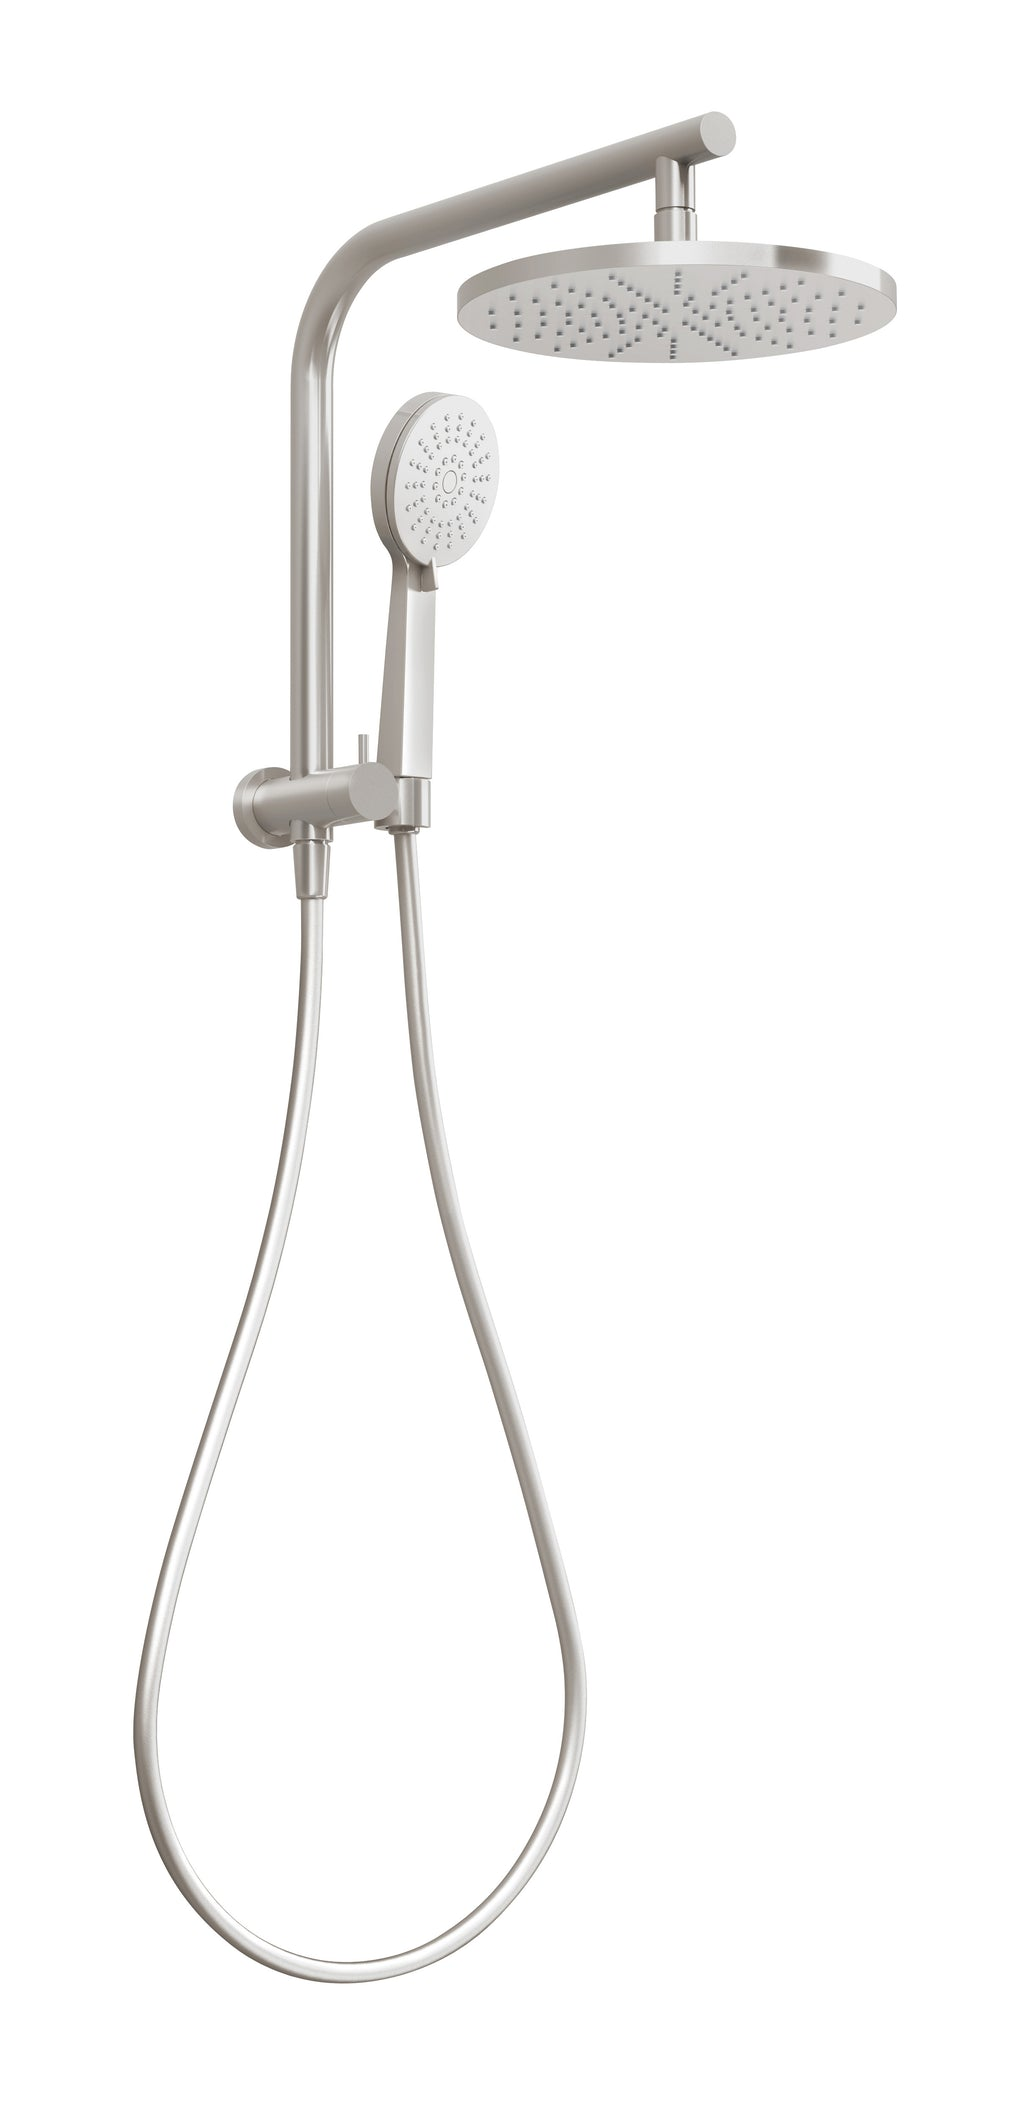 Vivid Slimline Compact Twin Shower (Brushed Nickel)